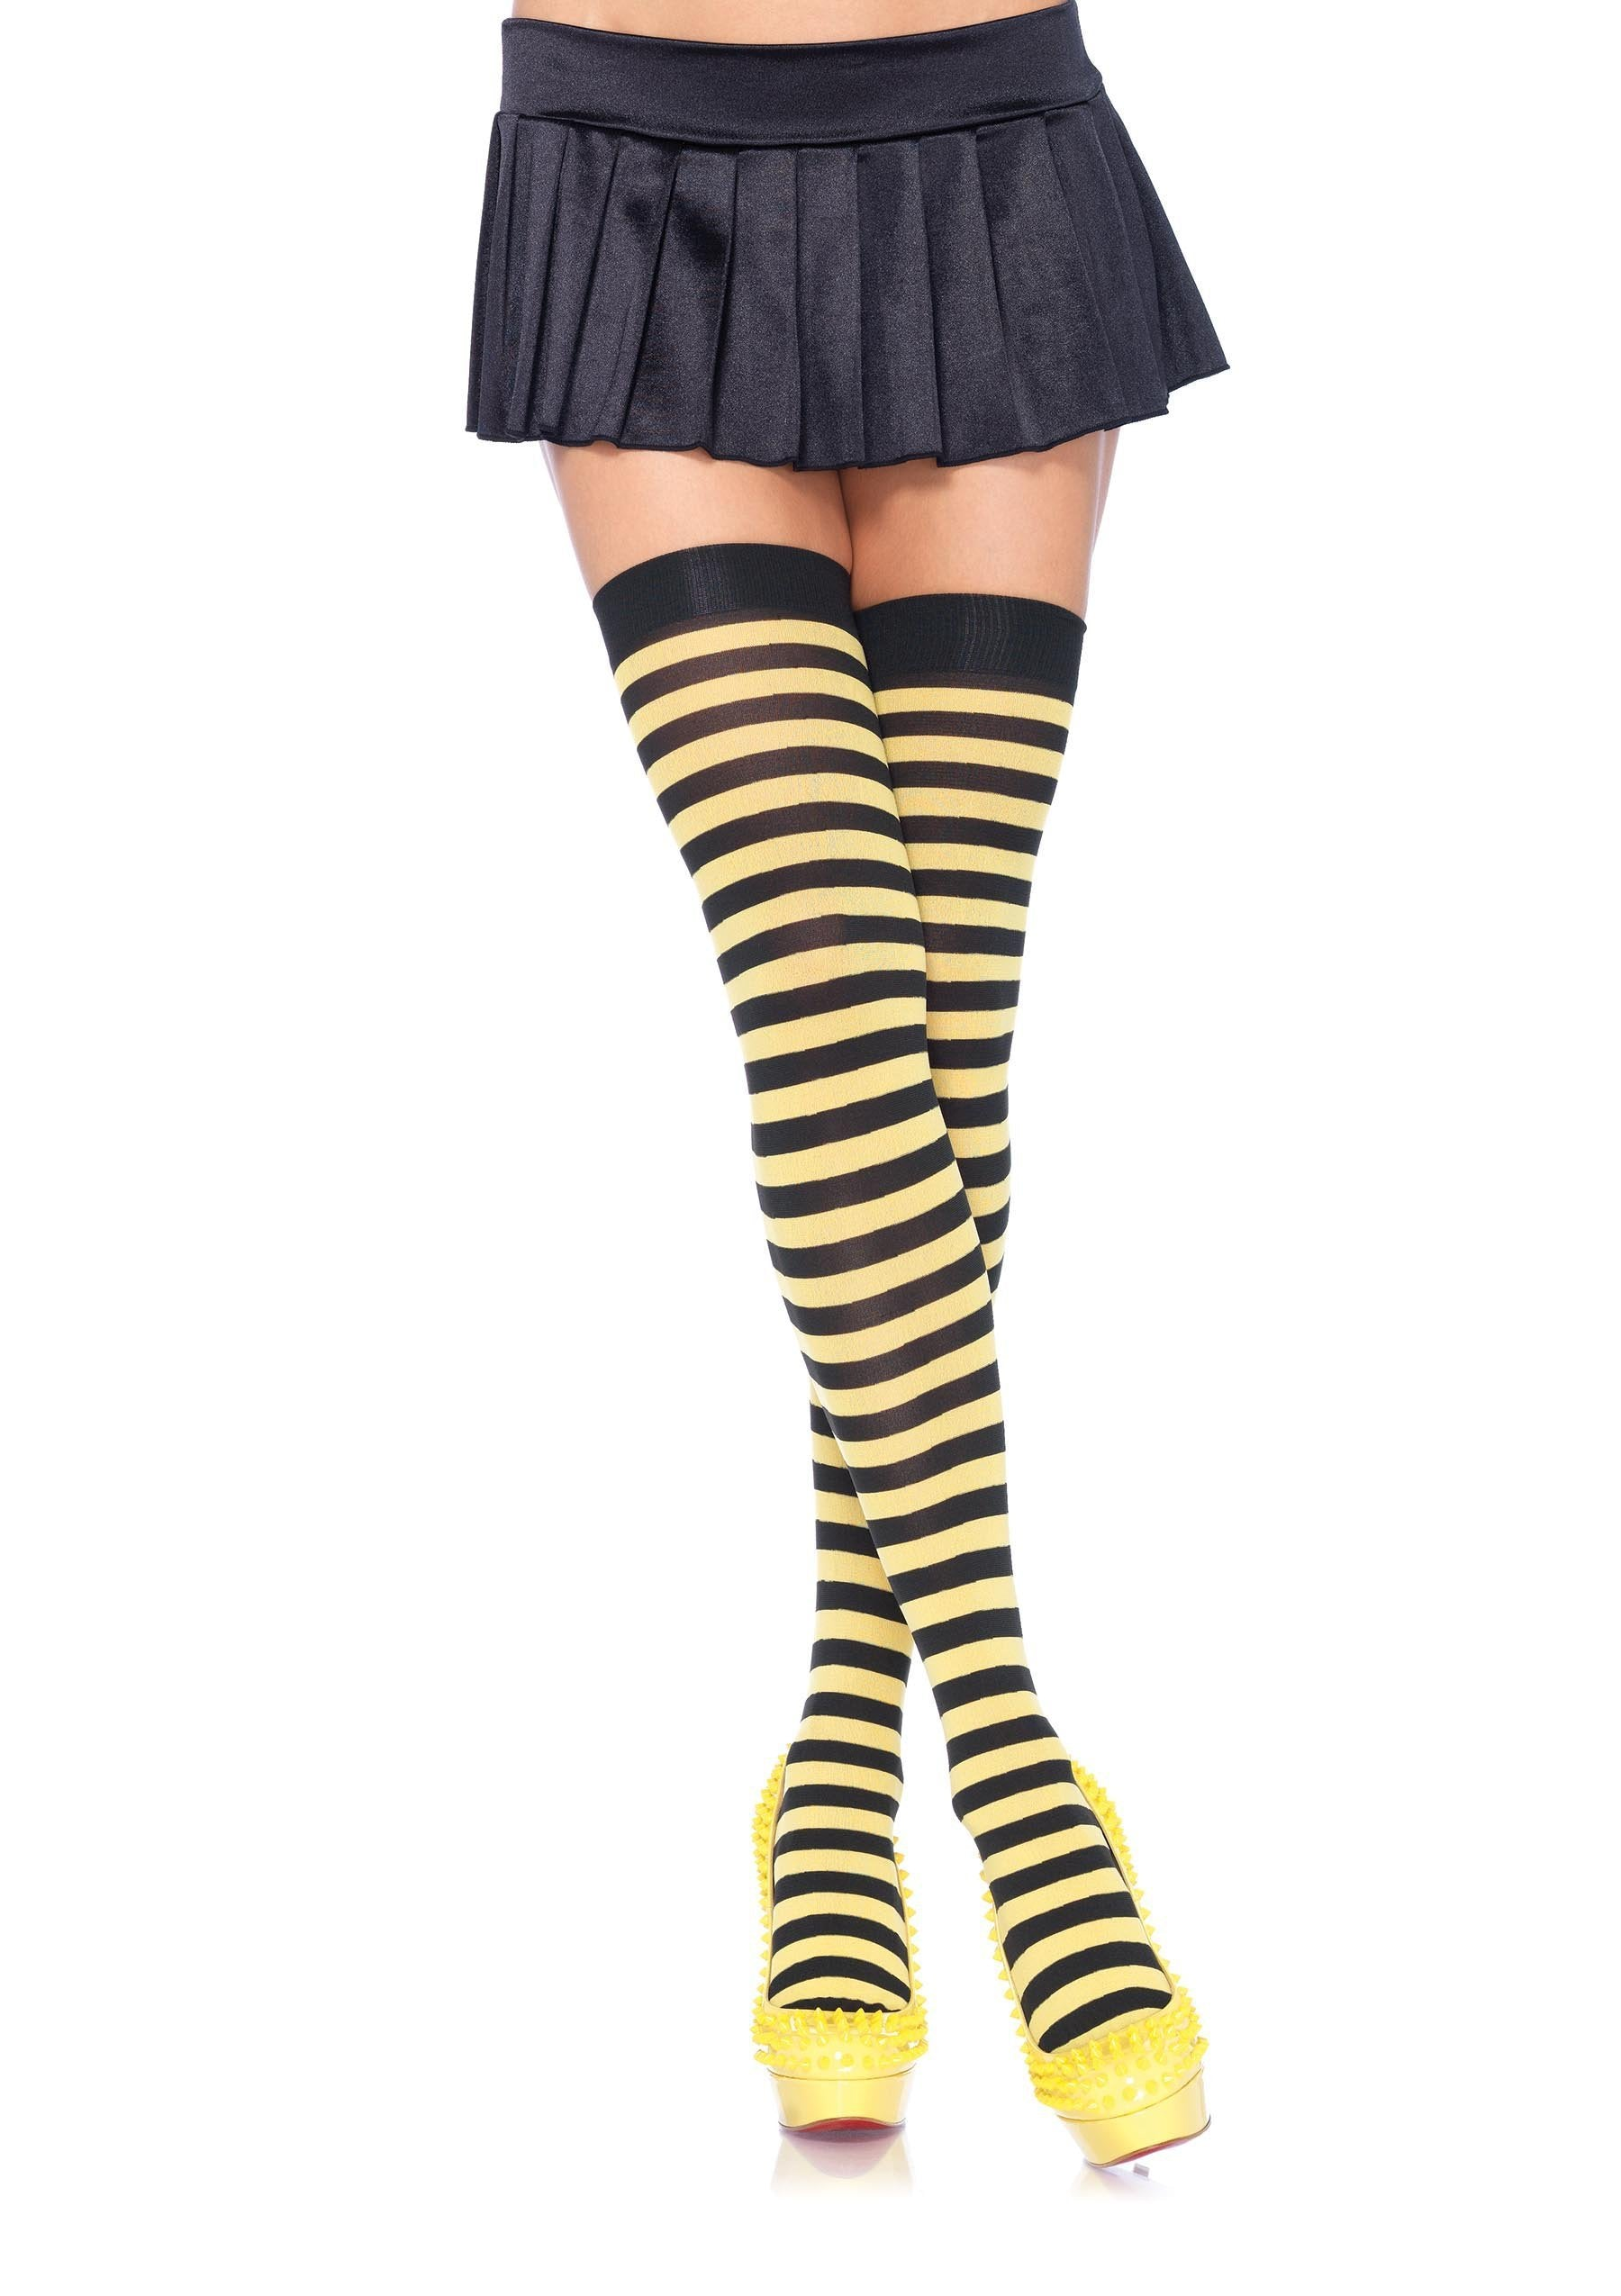 Leg Avenue Costume Accessories BLACK/YELL / O/S Striped Thigh High Stockings